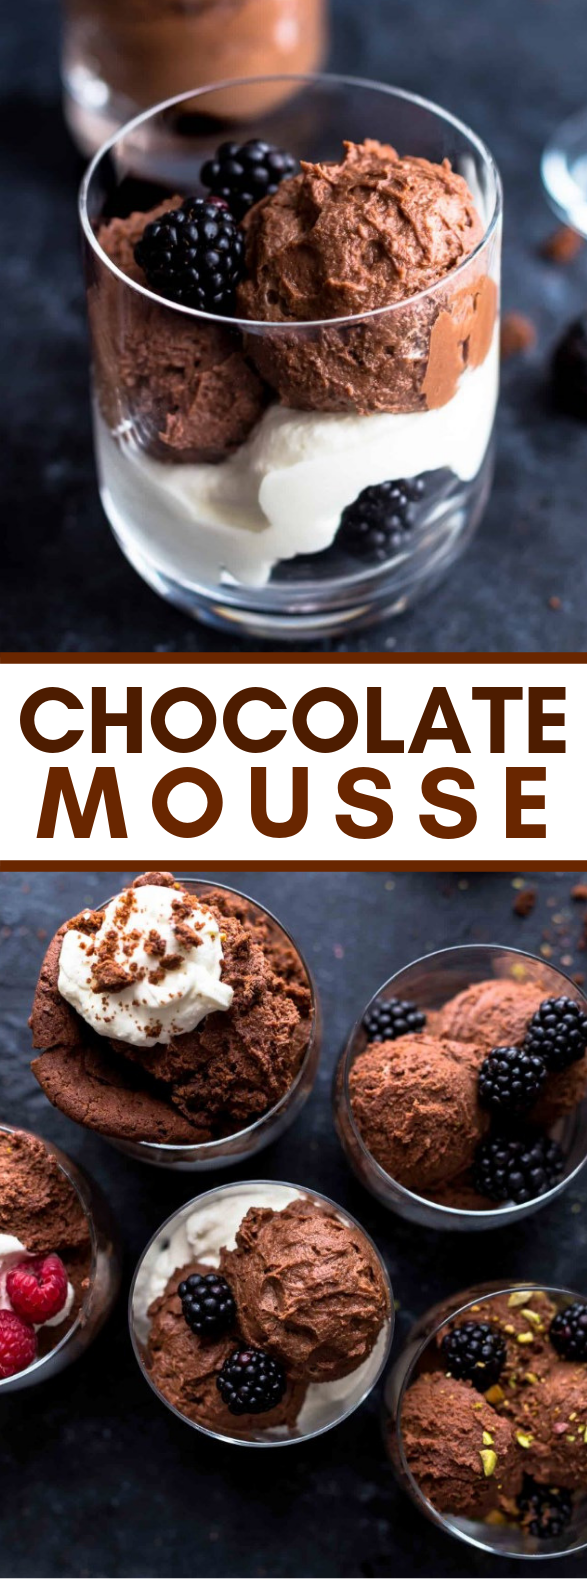 HOW TO MAKE CHOCOLATE MOUSSE #desserts #sweets